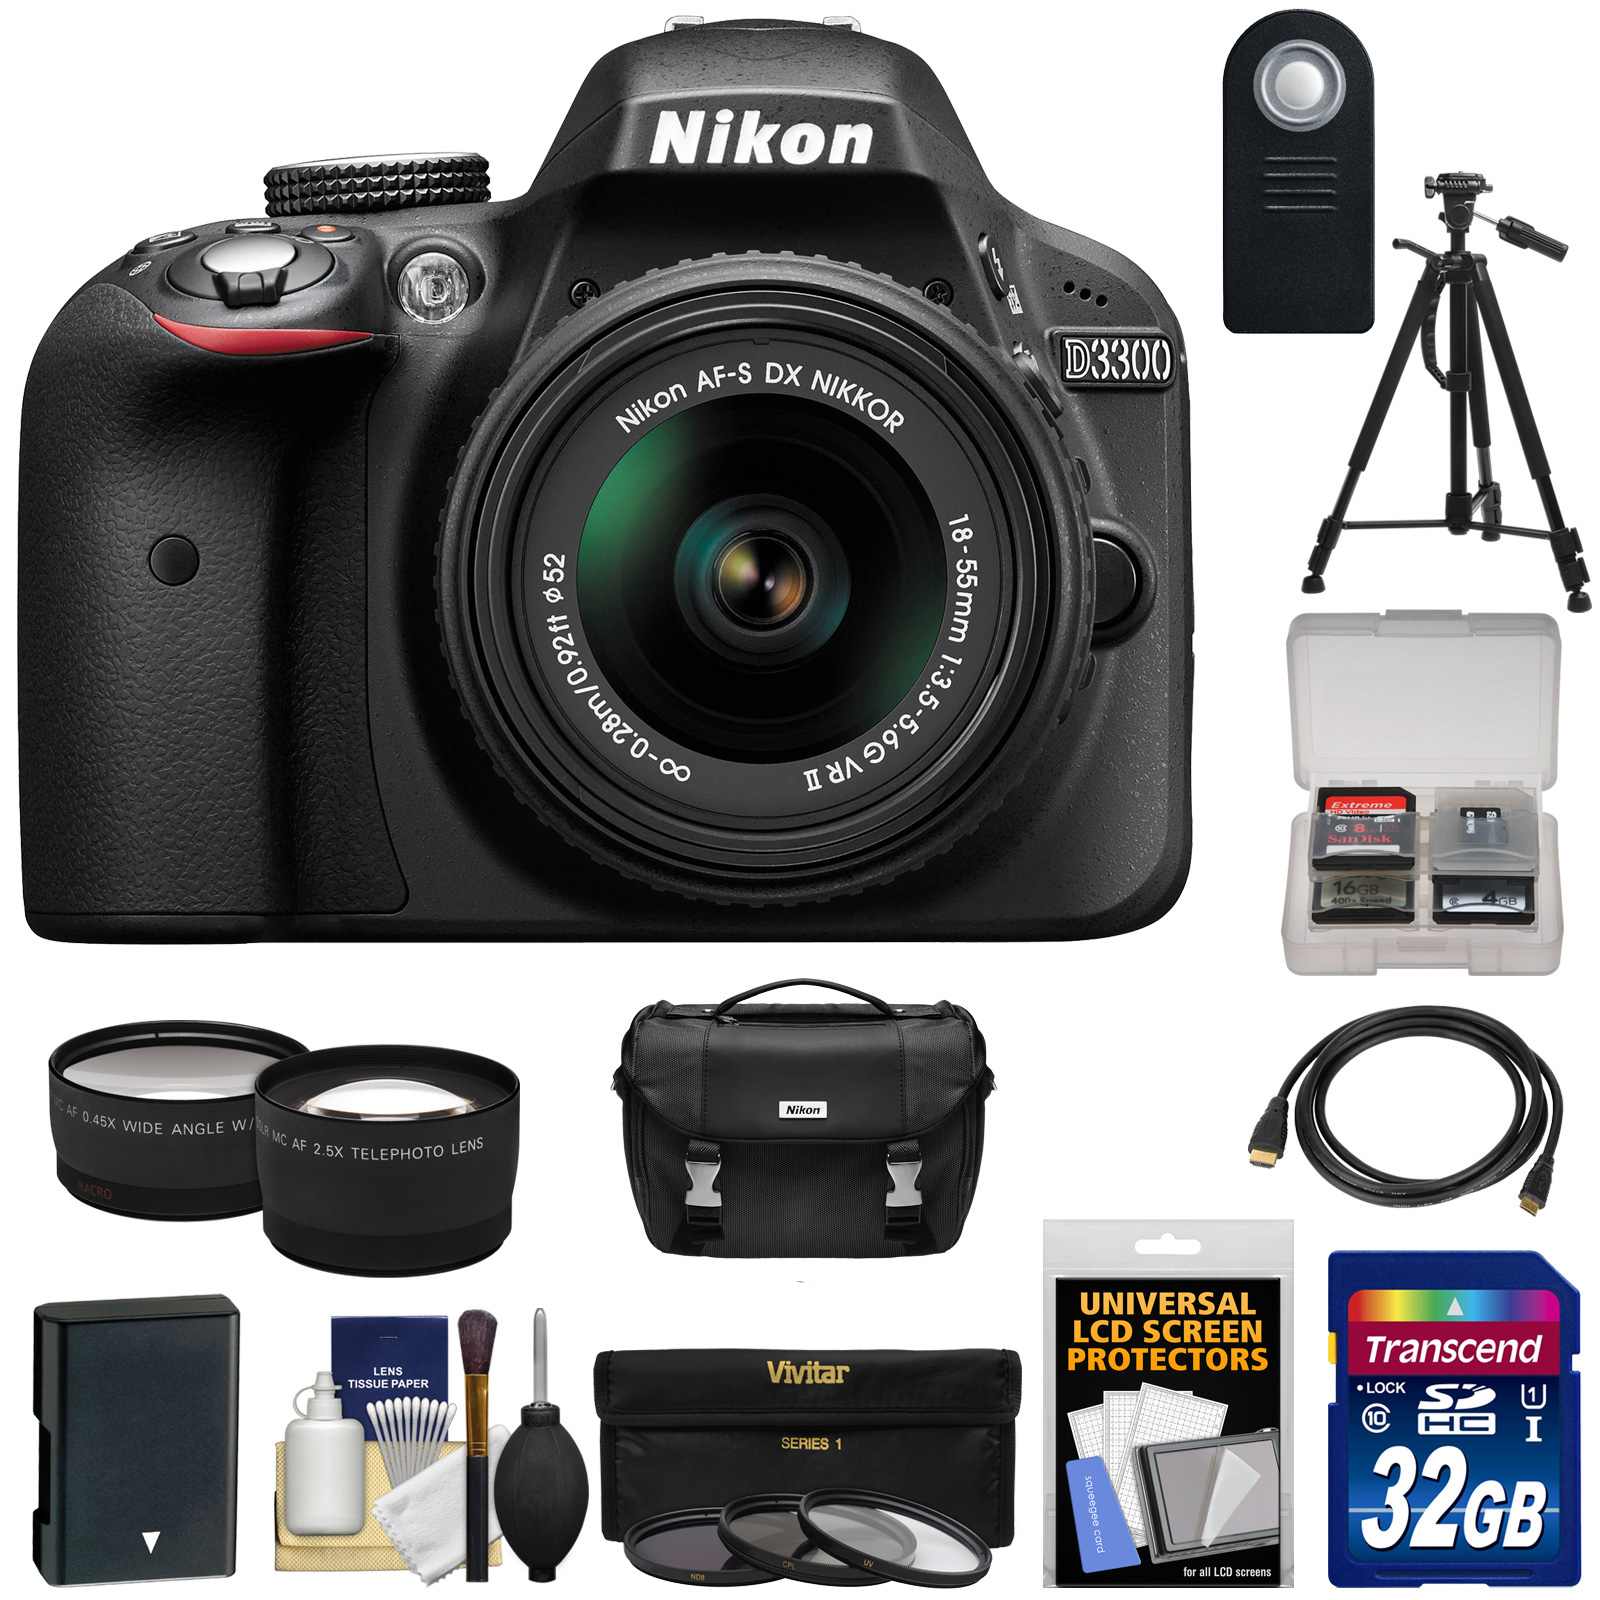 Nikon D3300 Digital SLR Camera & 18-55mm G VR DX II AF-S Zoom Lens (Black) with 32GB Card + Battery + Case + Tripod + Tele/Wide Lens Kit